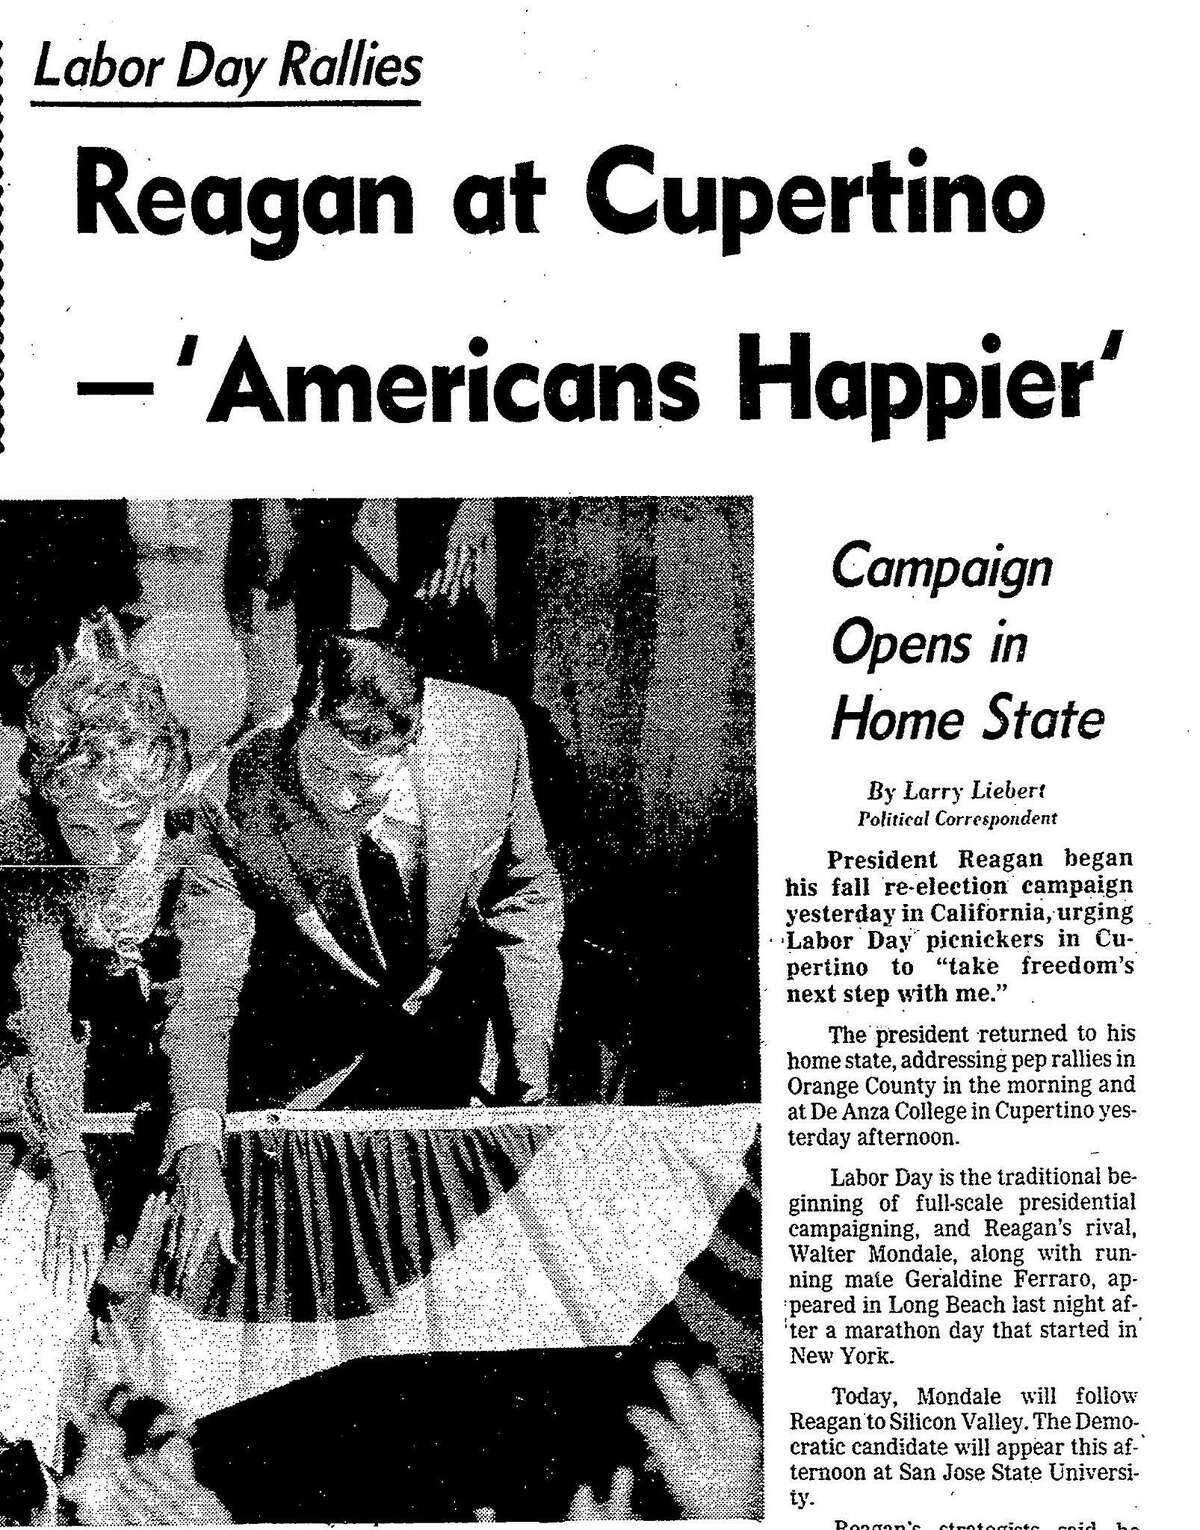 Chronicle September 4, 1984 coverage of a campaign kick-off rally for incumbent President Ronald Reagan at De Anza College